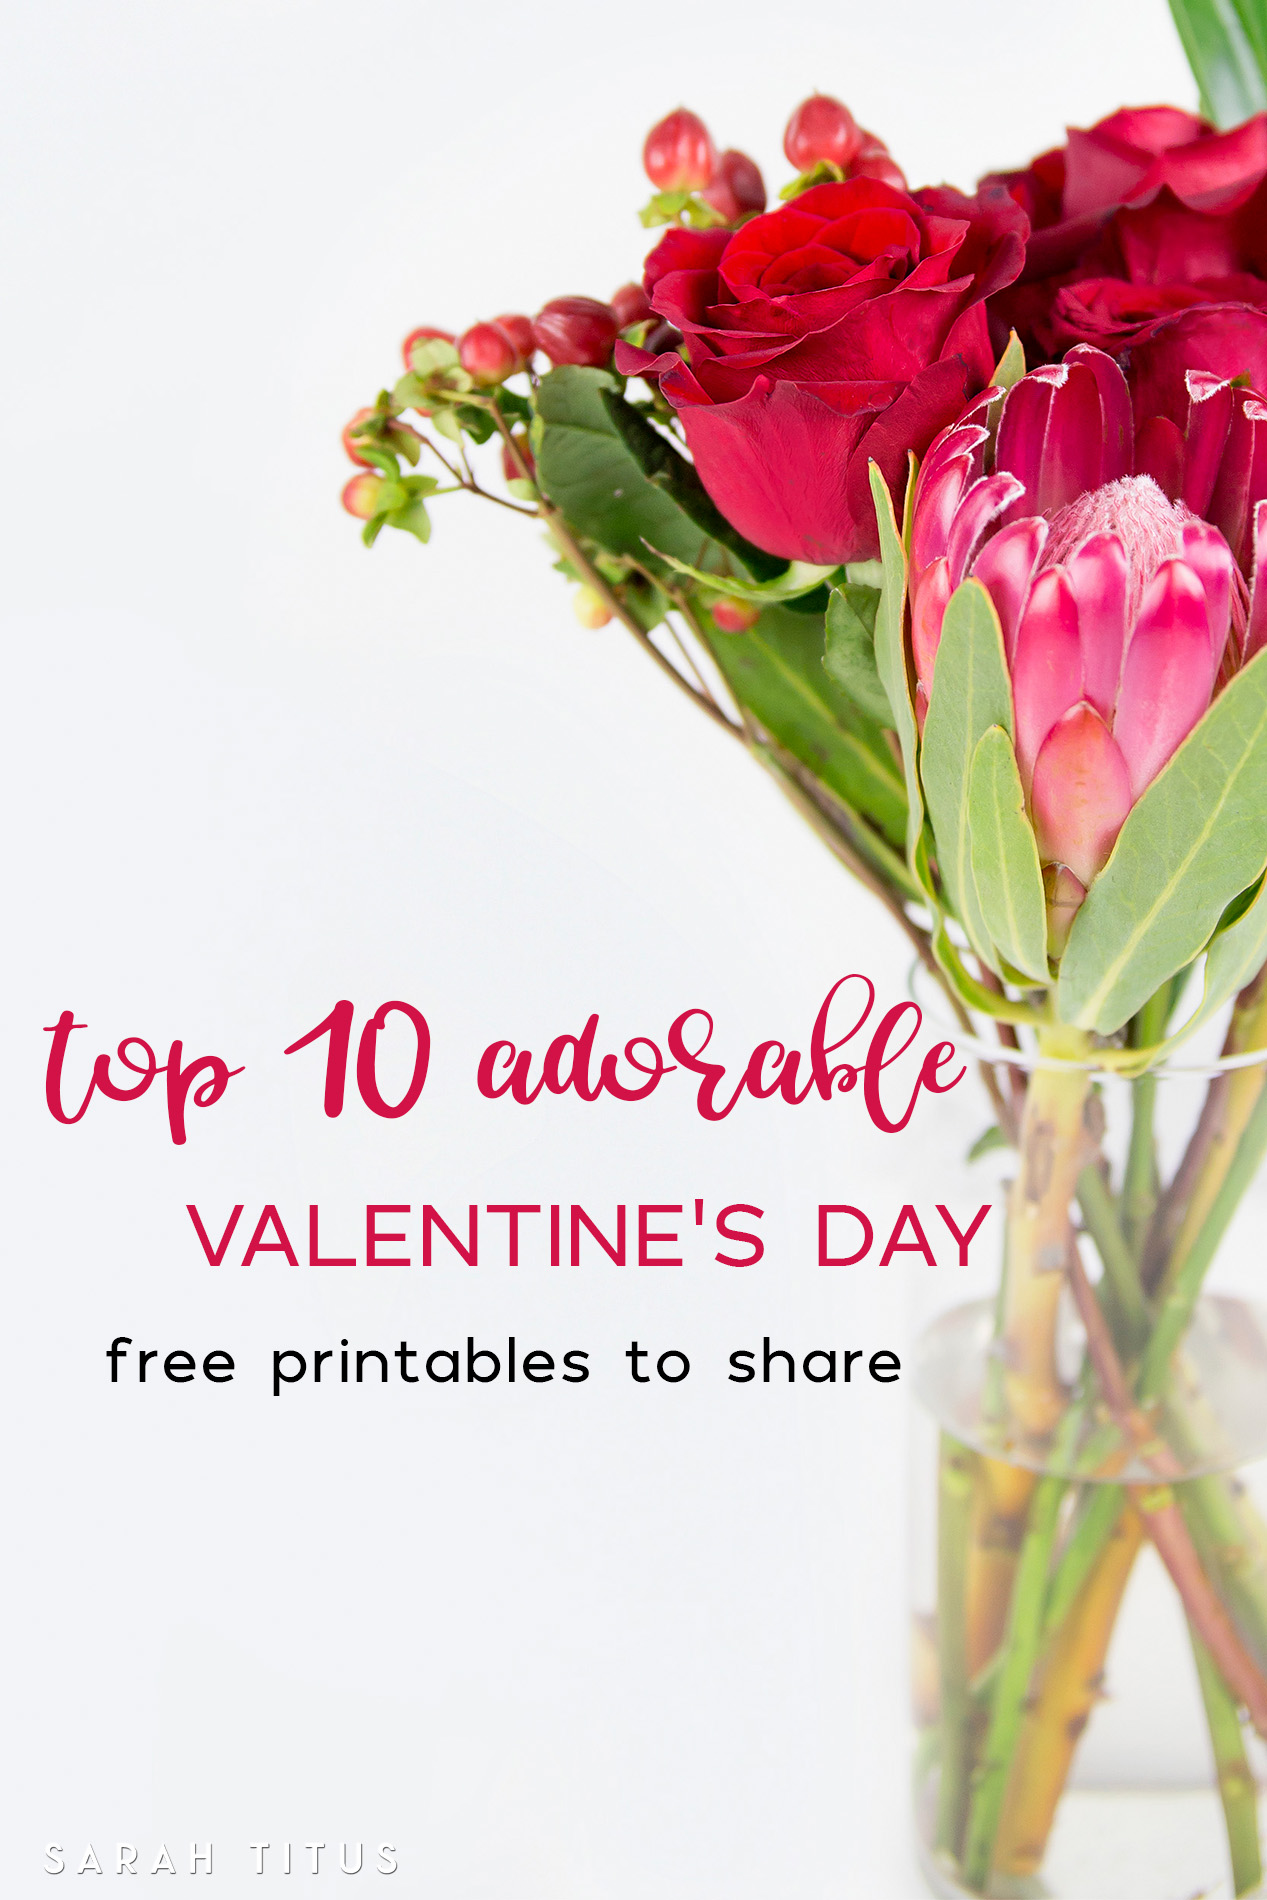 To make your loved ones feel super special and help save you tons of time, I've scoured the internet to bring you the BEST,Top 10 Adorable Valentine's Day Free Printables To Share